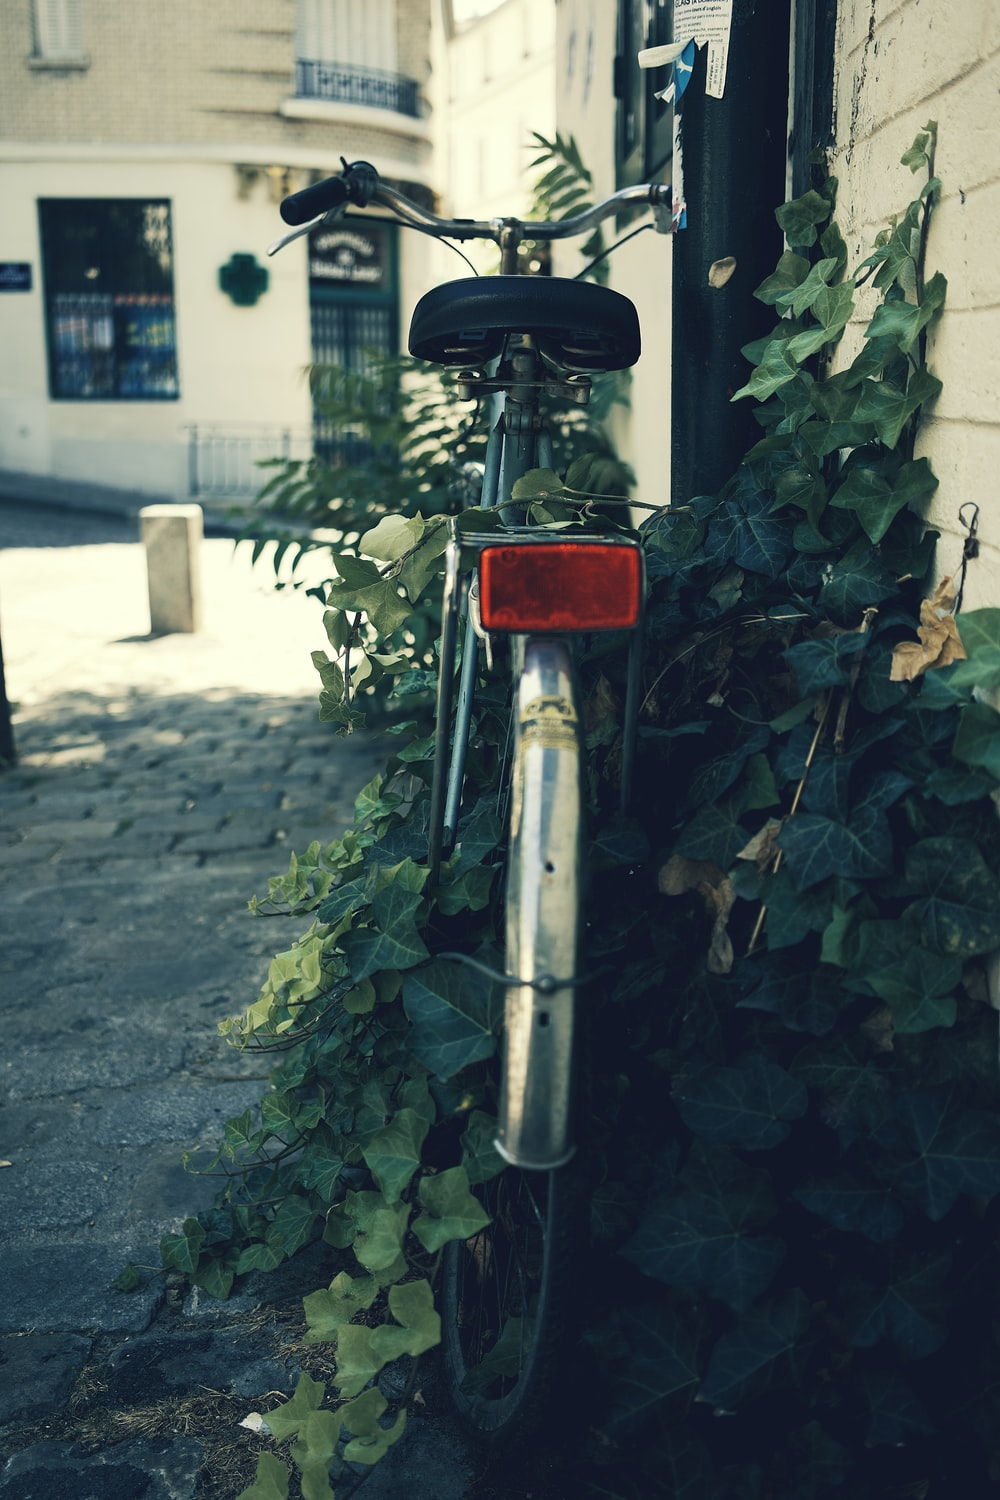 red and gray bicycle near green plants